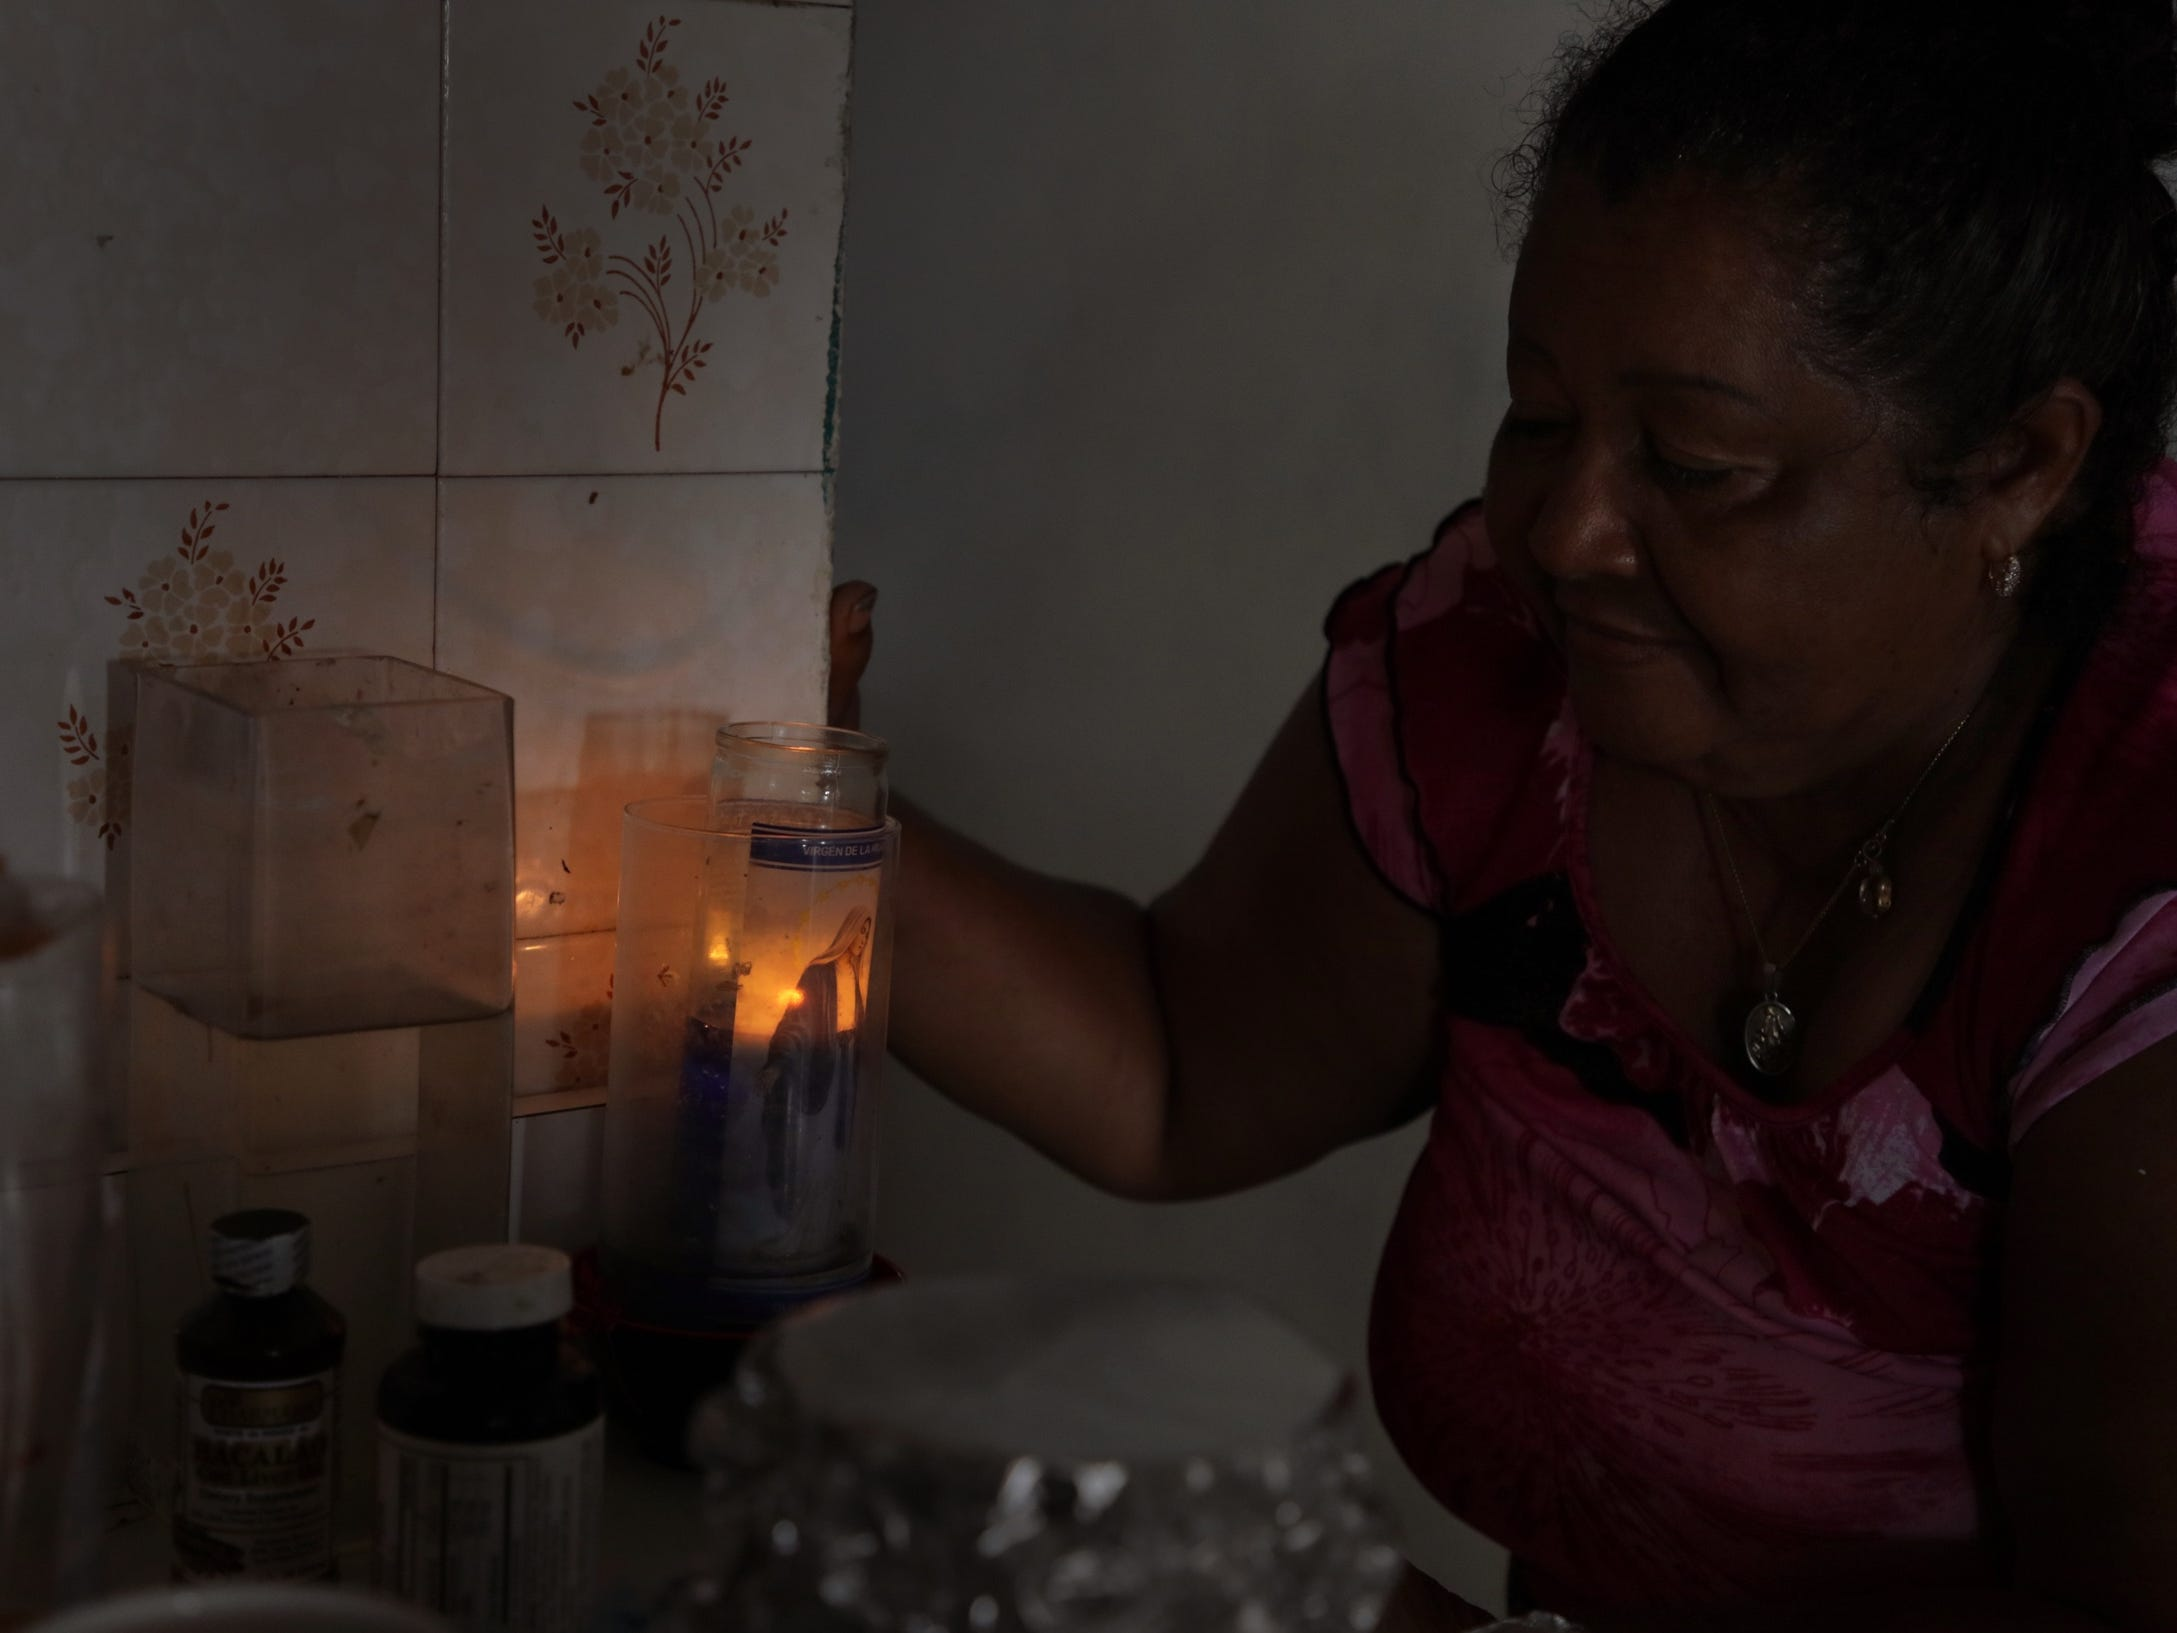 Crucita Velazquez, 63 tends to the candle she lights daily asking for protection from the virgin Mary in her kitchen in Yabucoa, Puerto Rico.